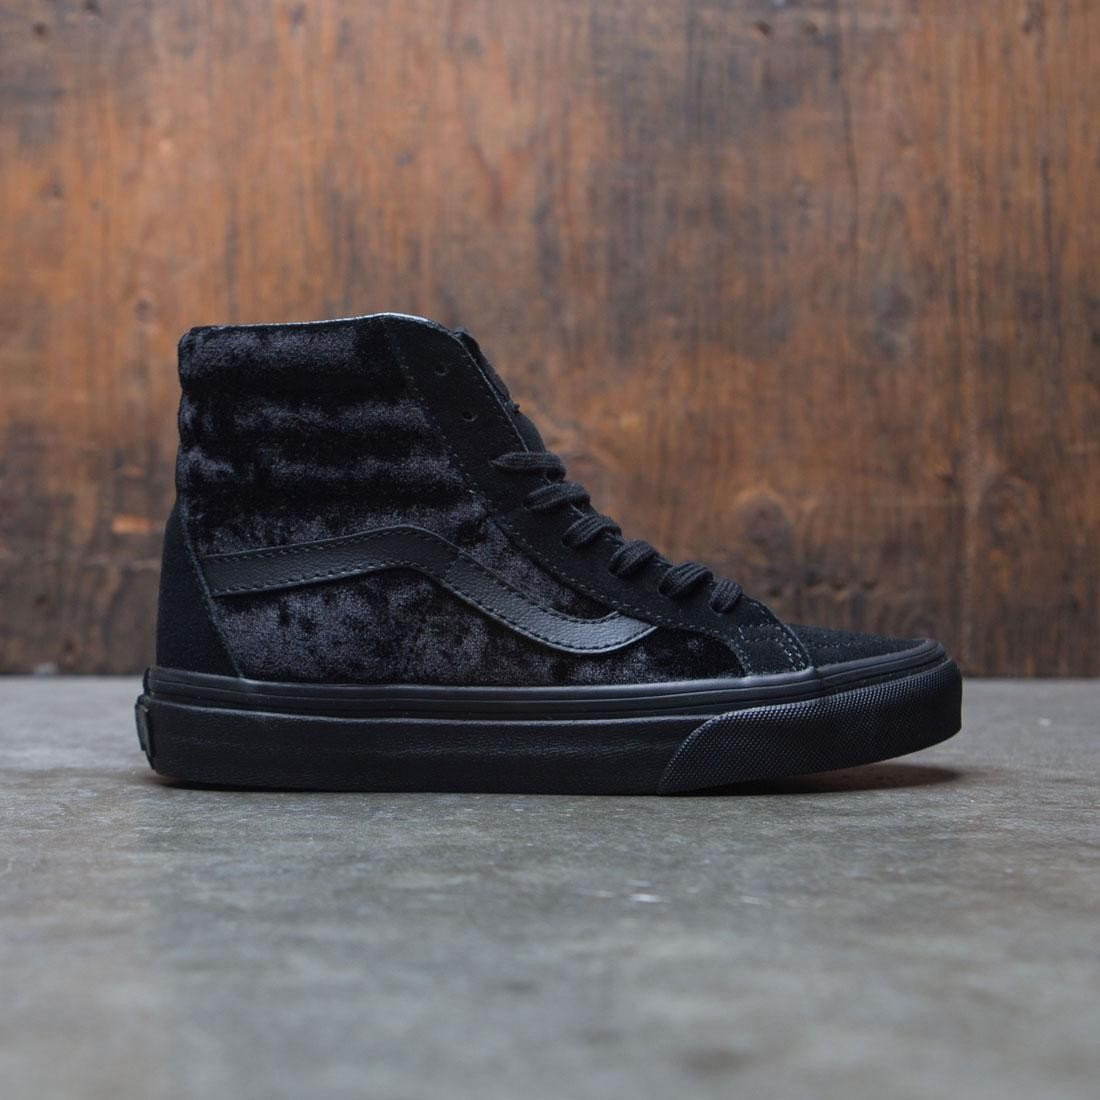 4529914be1 Vans Women SK8-Hi Reissue - Velvet black